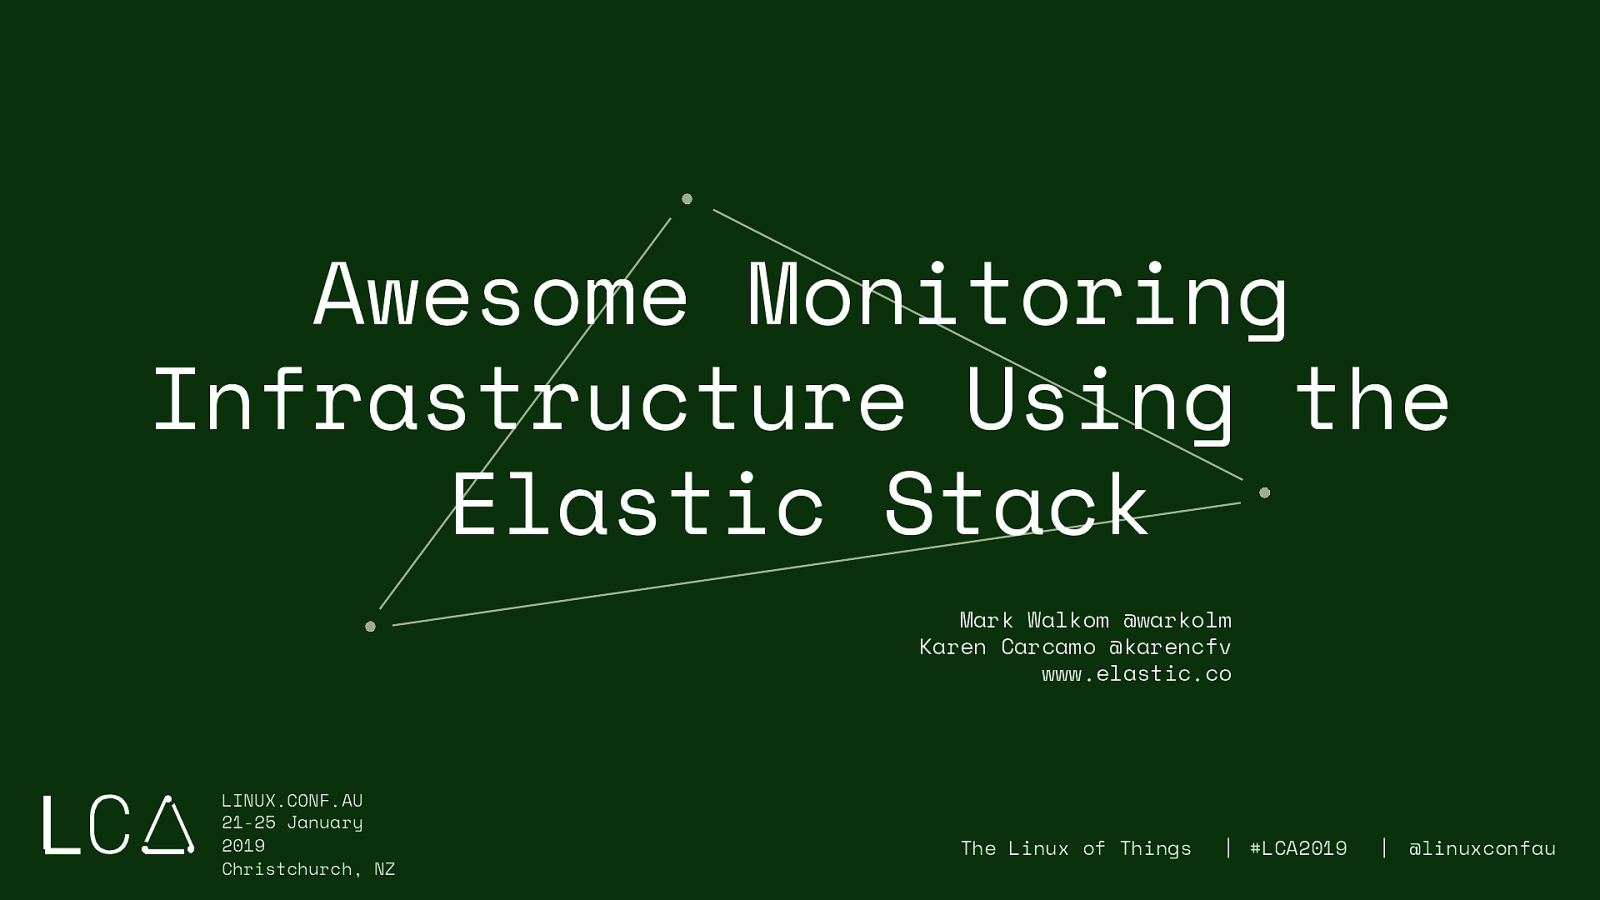 Awesome Monitoring Infrastructure Using the Elastic Stack